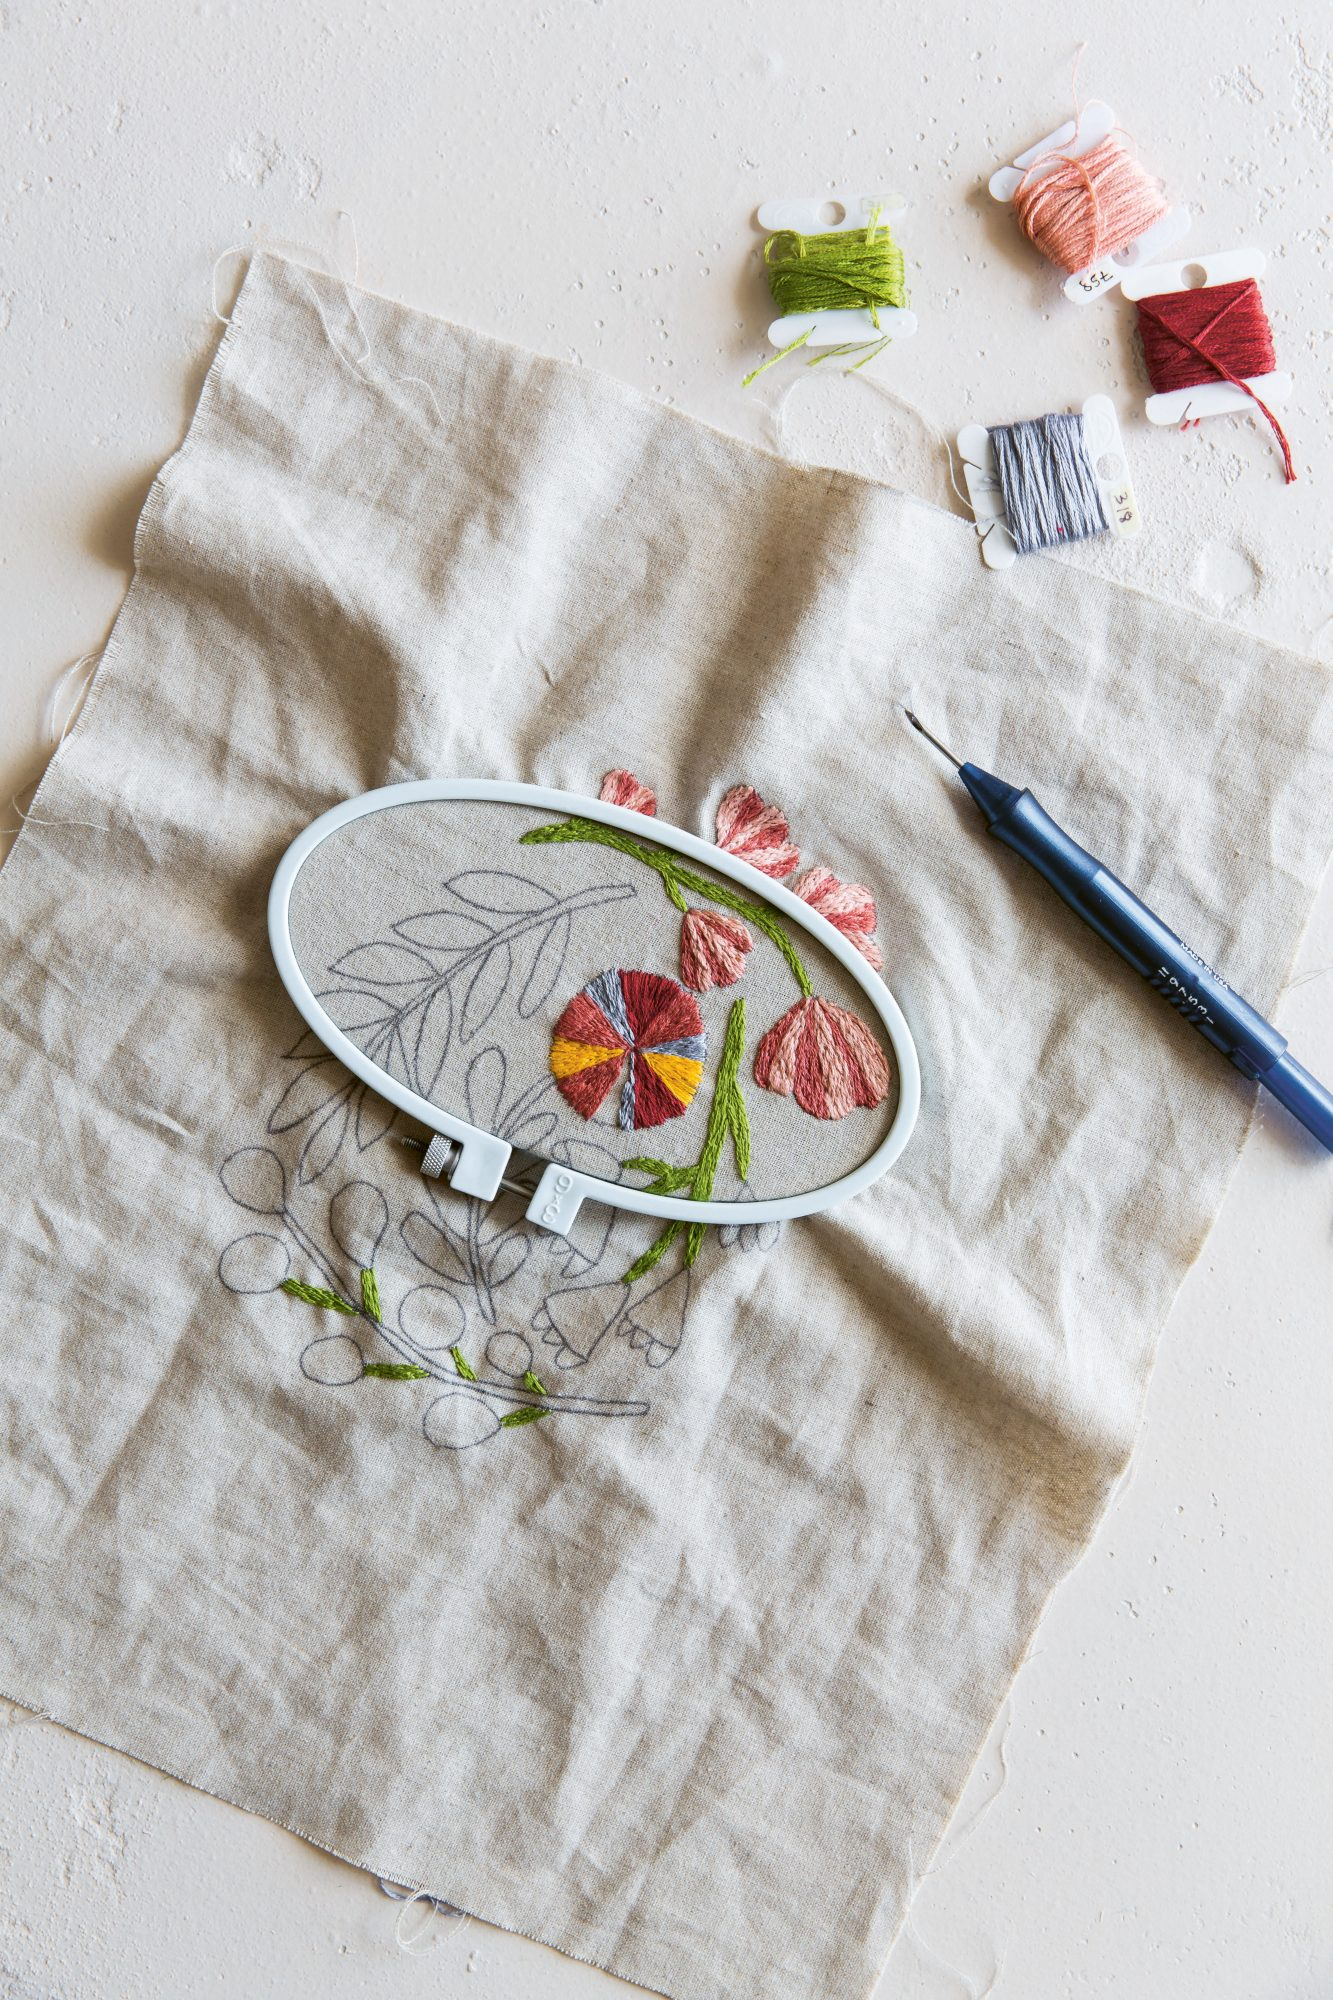 Punch-Needle-Floral-Embroidery_photocredit_Catherine-Frawley.jpg